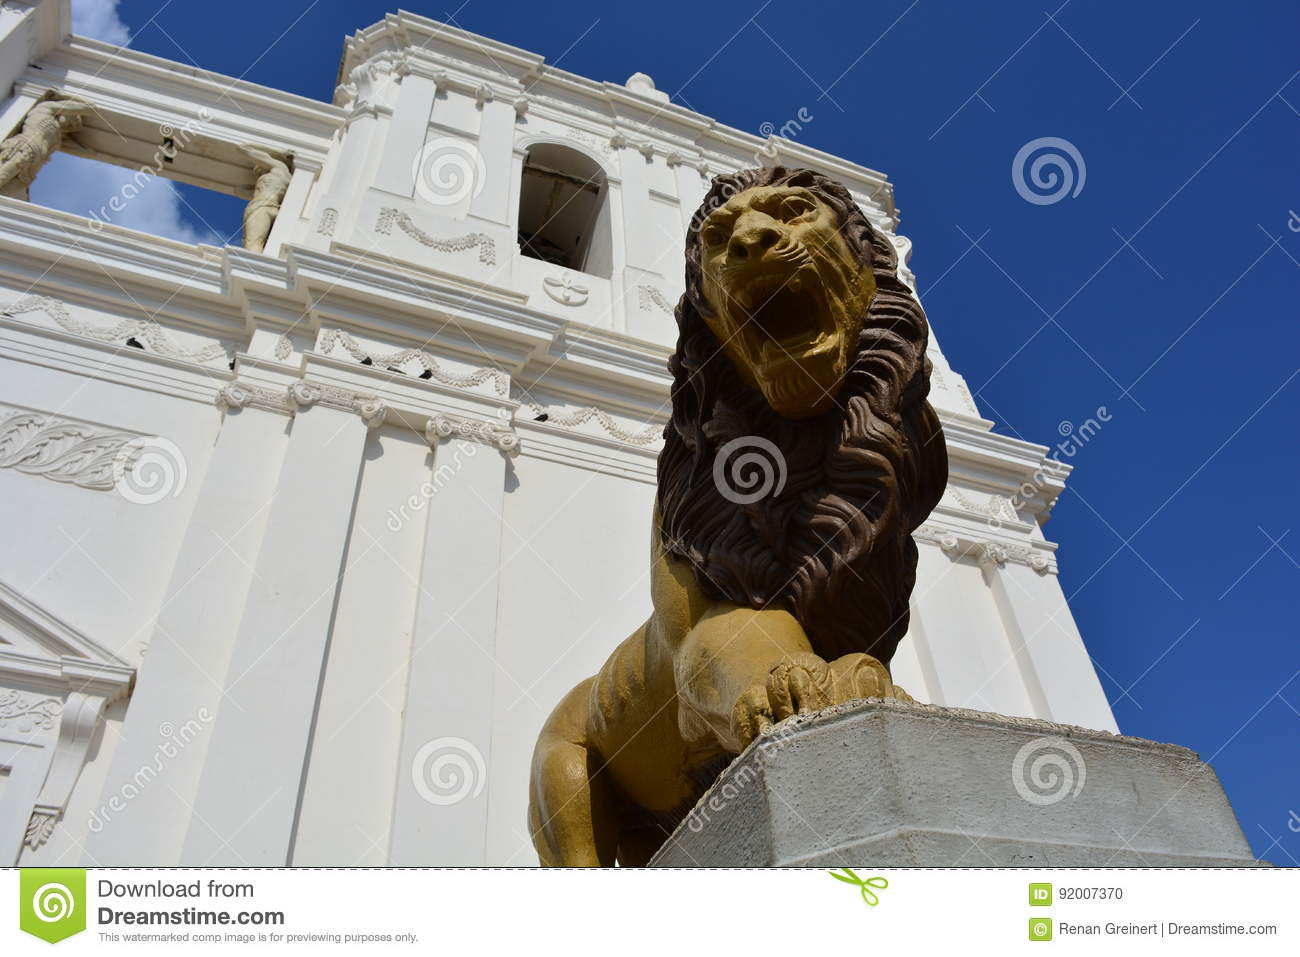 Sculpture of a lion at the Cathedral of Leon, an UNESCO Heritage Centre in Nicaragua